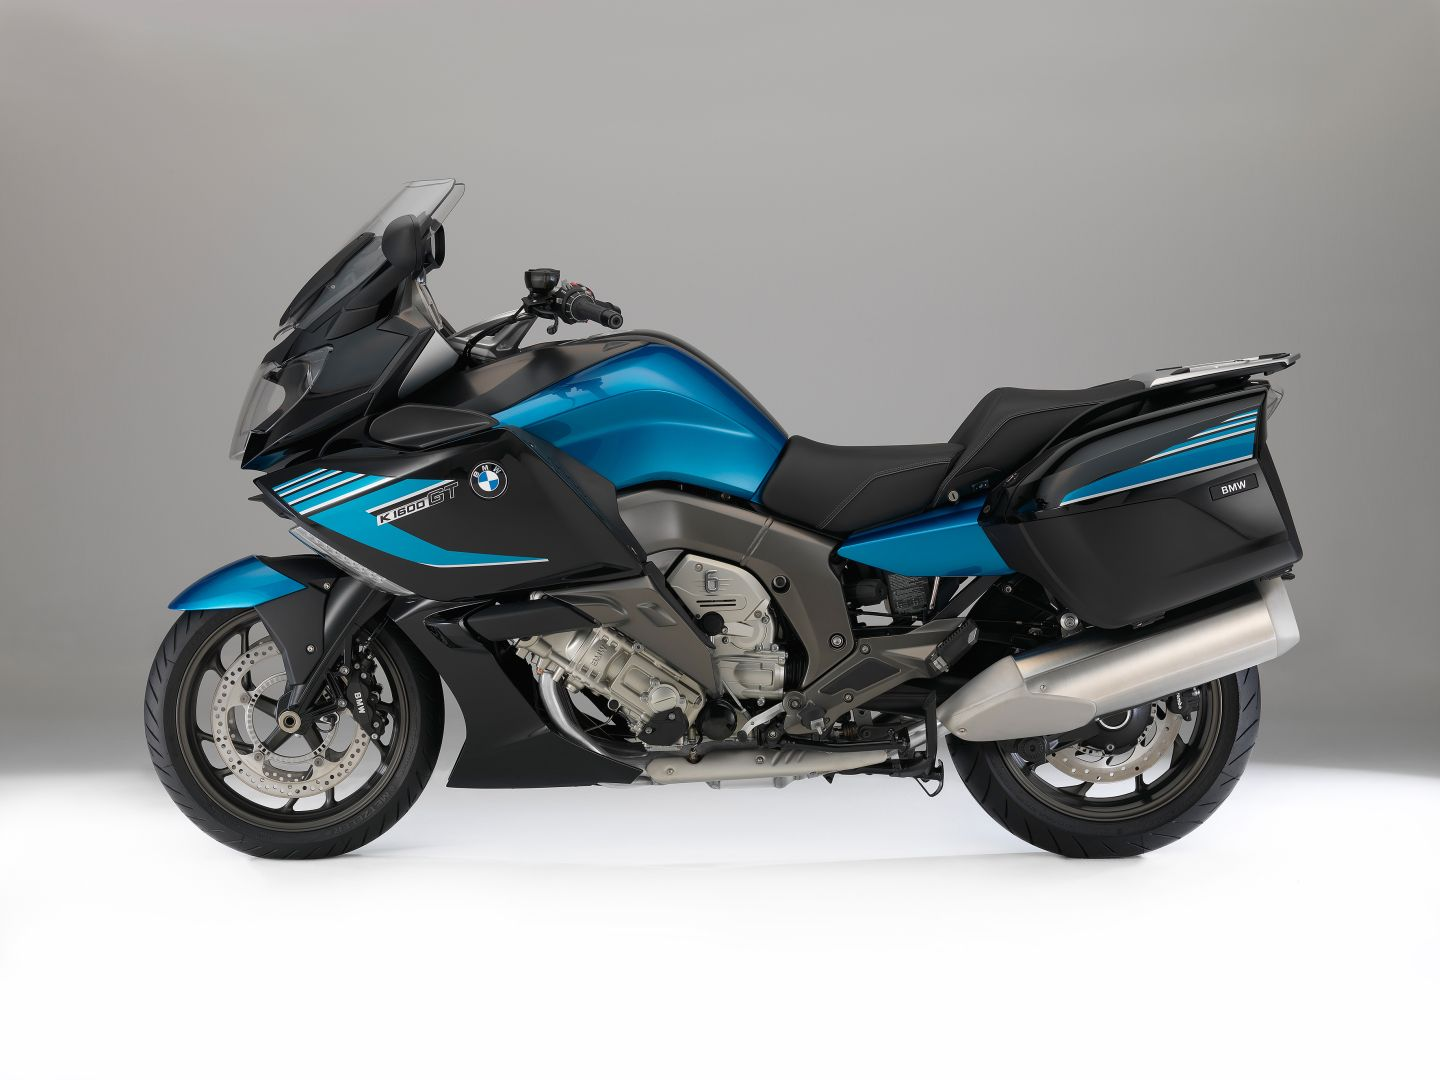 hight resolution of bmw motorcycles get upgraded colors and new features for 20162016 bmw k1600gt